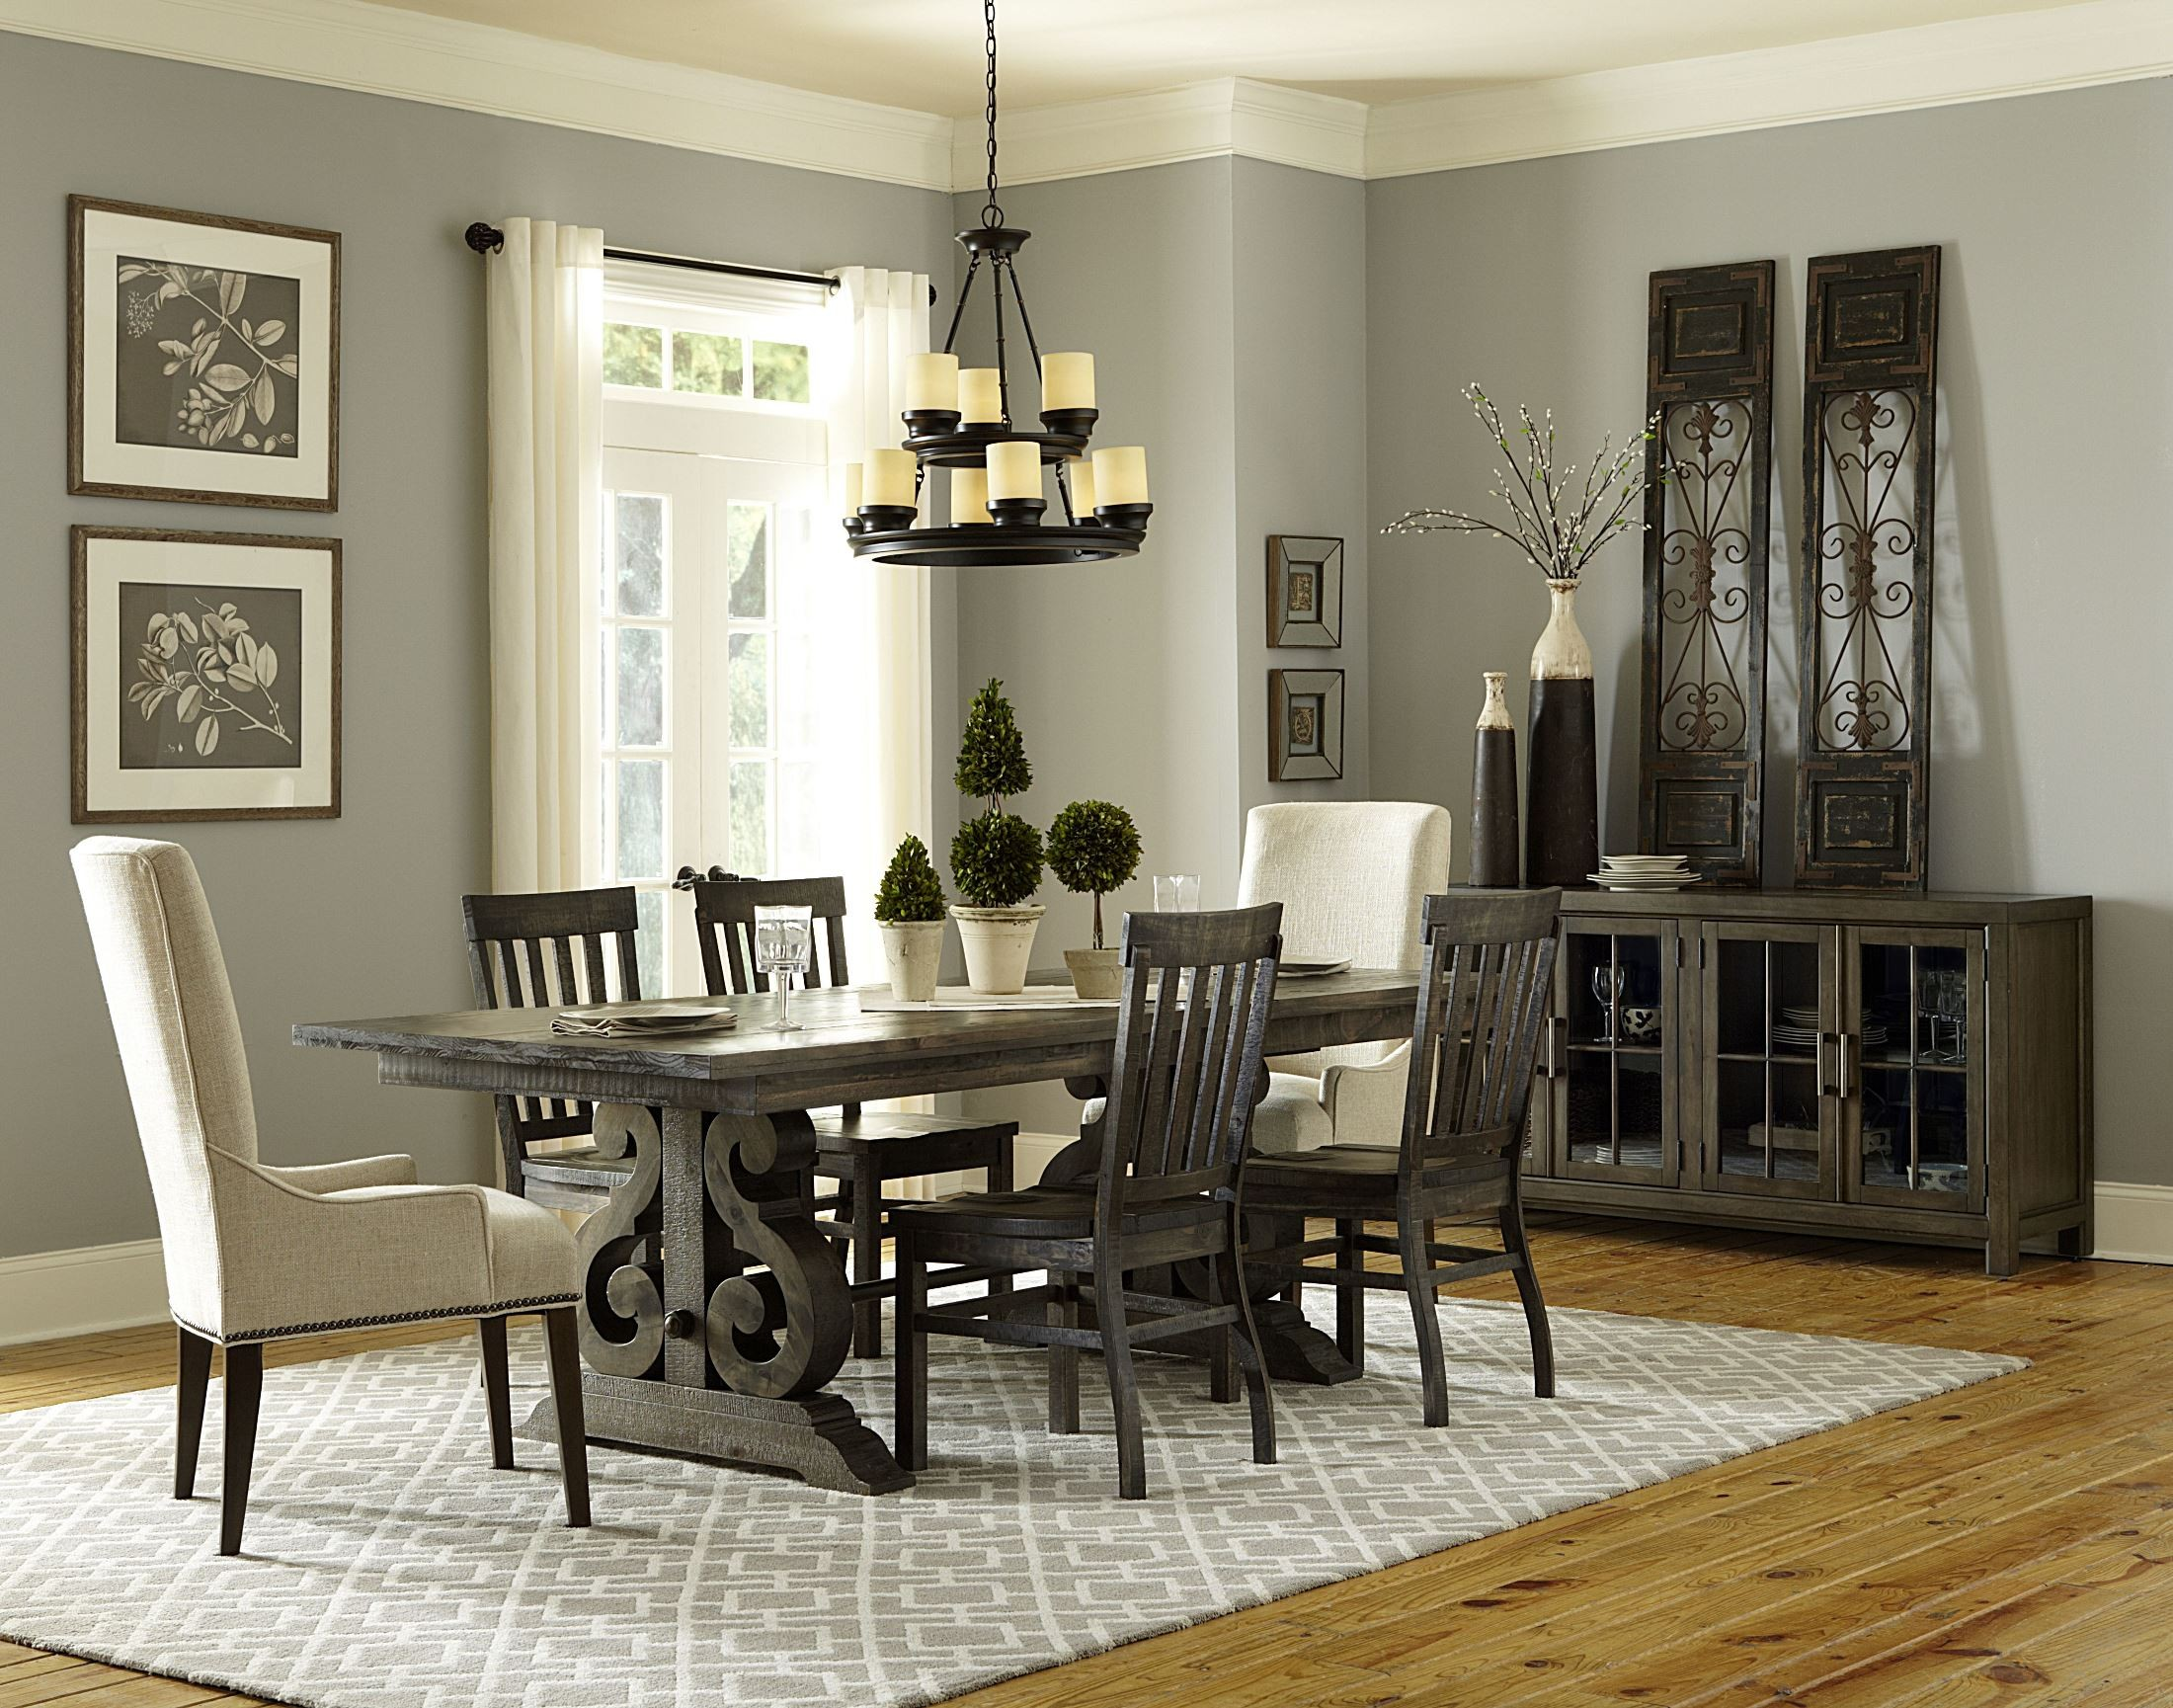 bellamy rectangular dining room set from magnussen home d2491 20t 20b coleman furniture. Black Bedroom Furniture Sets. Home Design Ideas